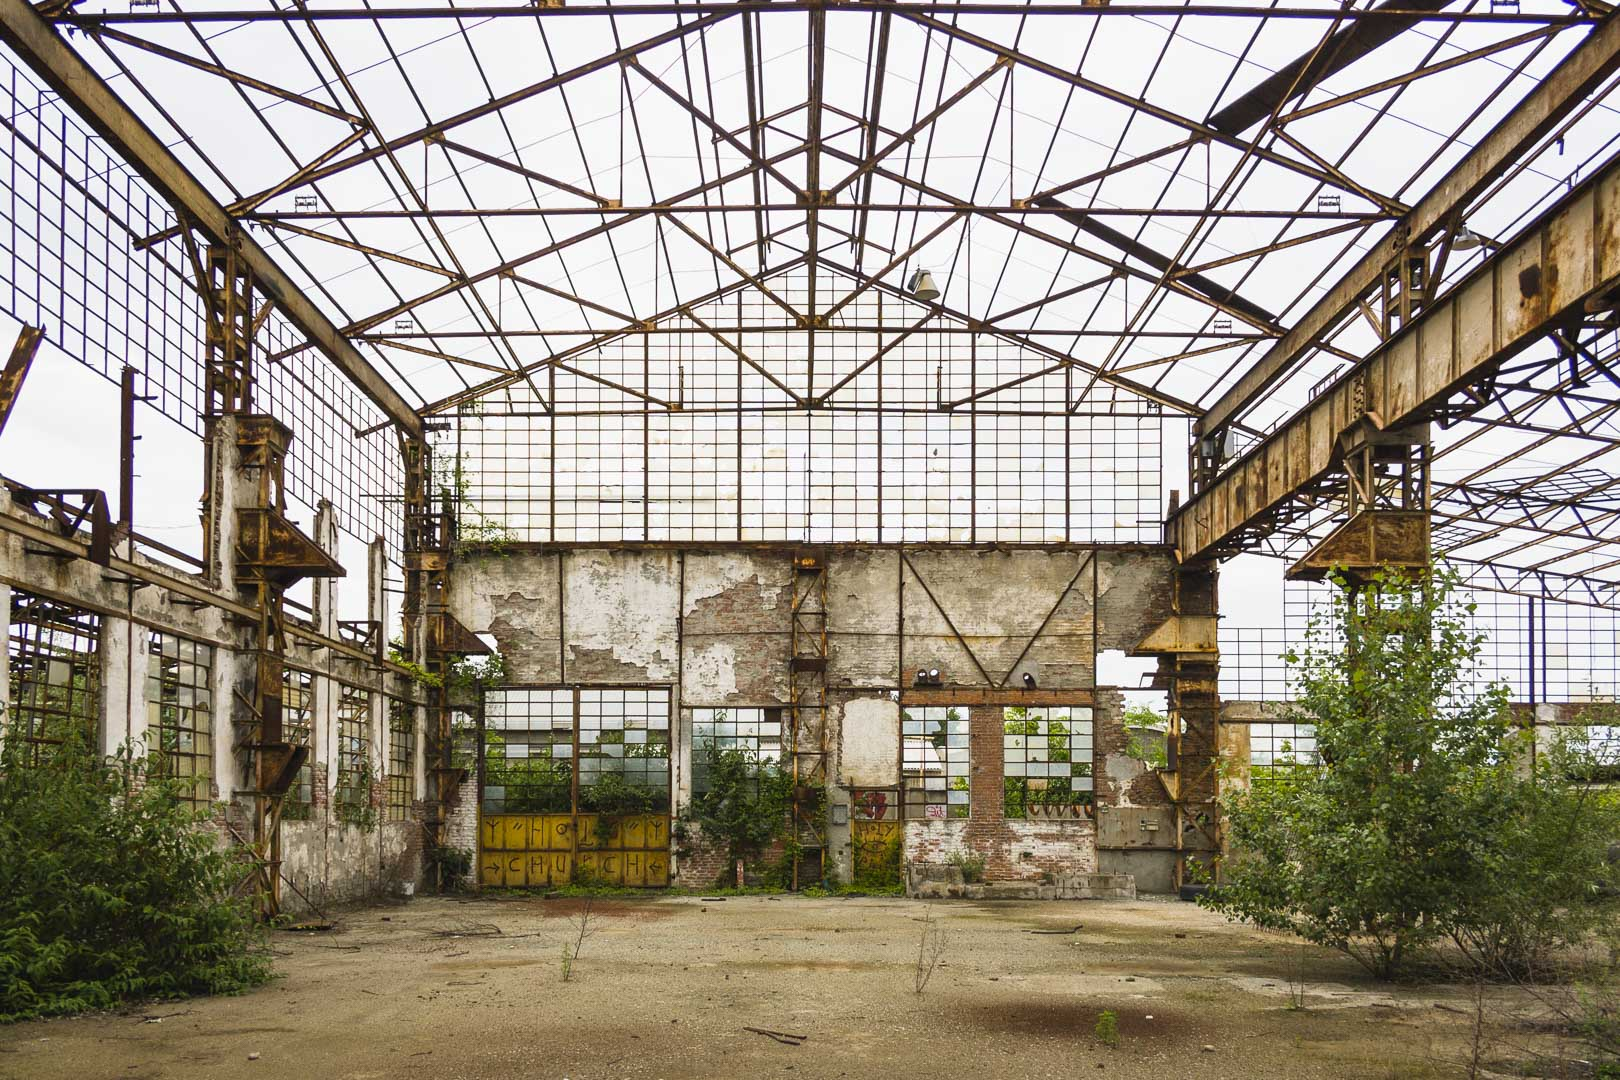 Mandelli – Abandoned Steel Mill – Collegno, Italy